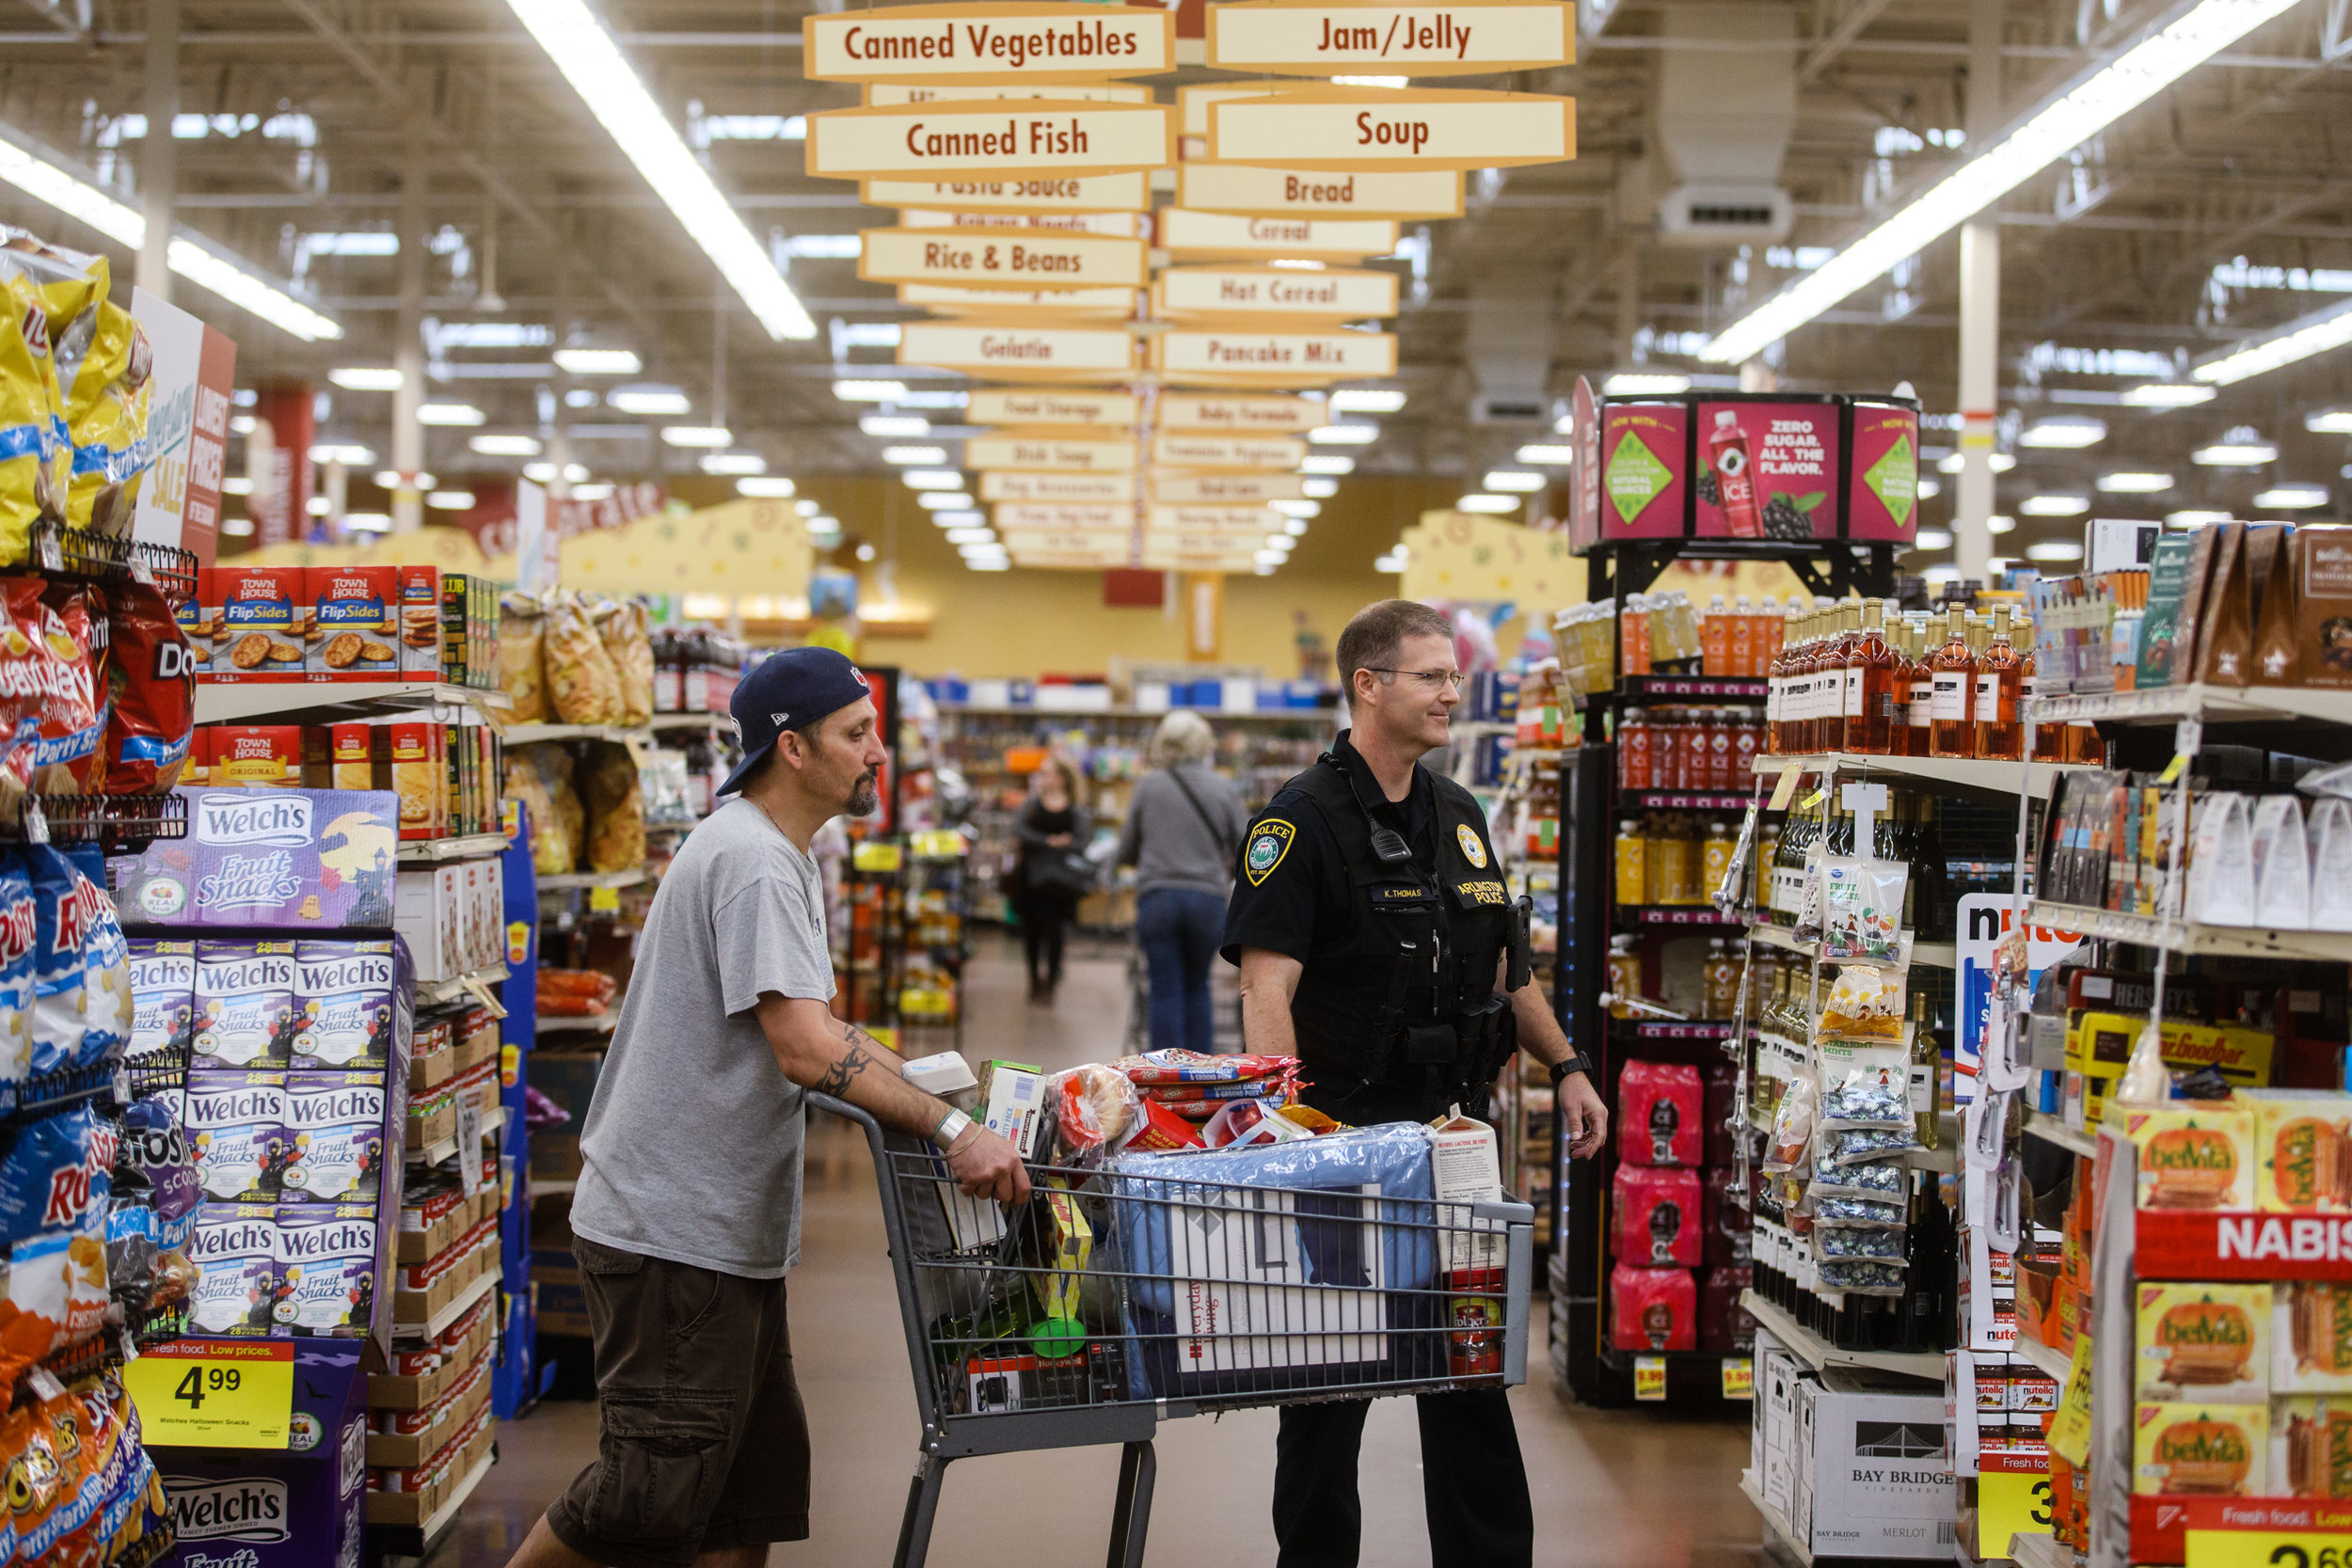 An Arlington police officer helping a man gather groceries and personal items at a Fred Meyer grocery store.    CREDIT: LEAH NASH FOR FINDING FIXES »